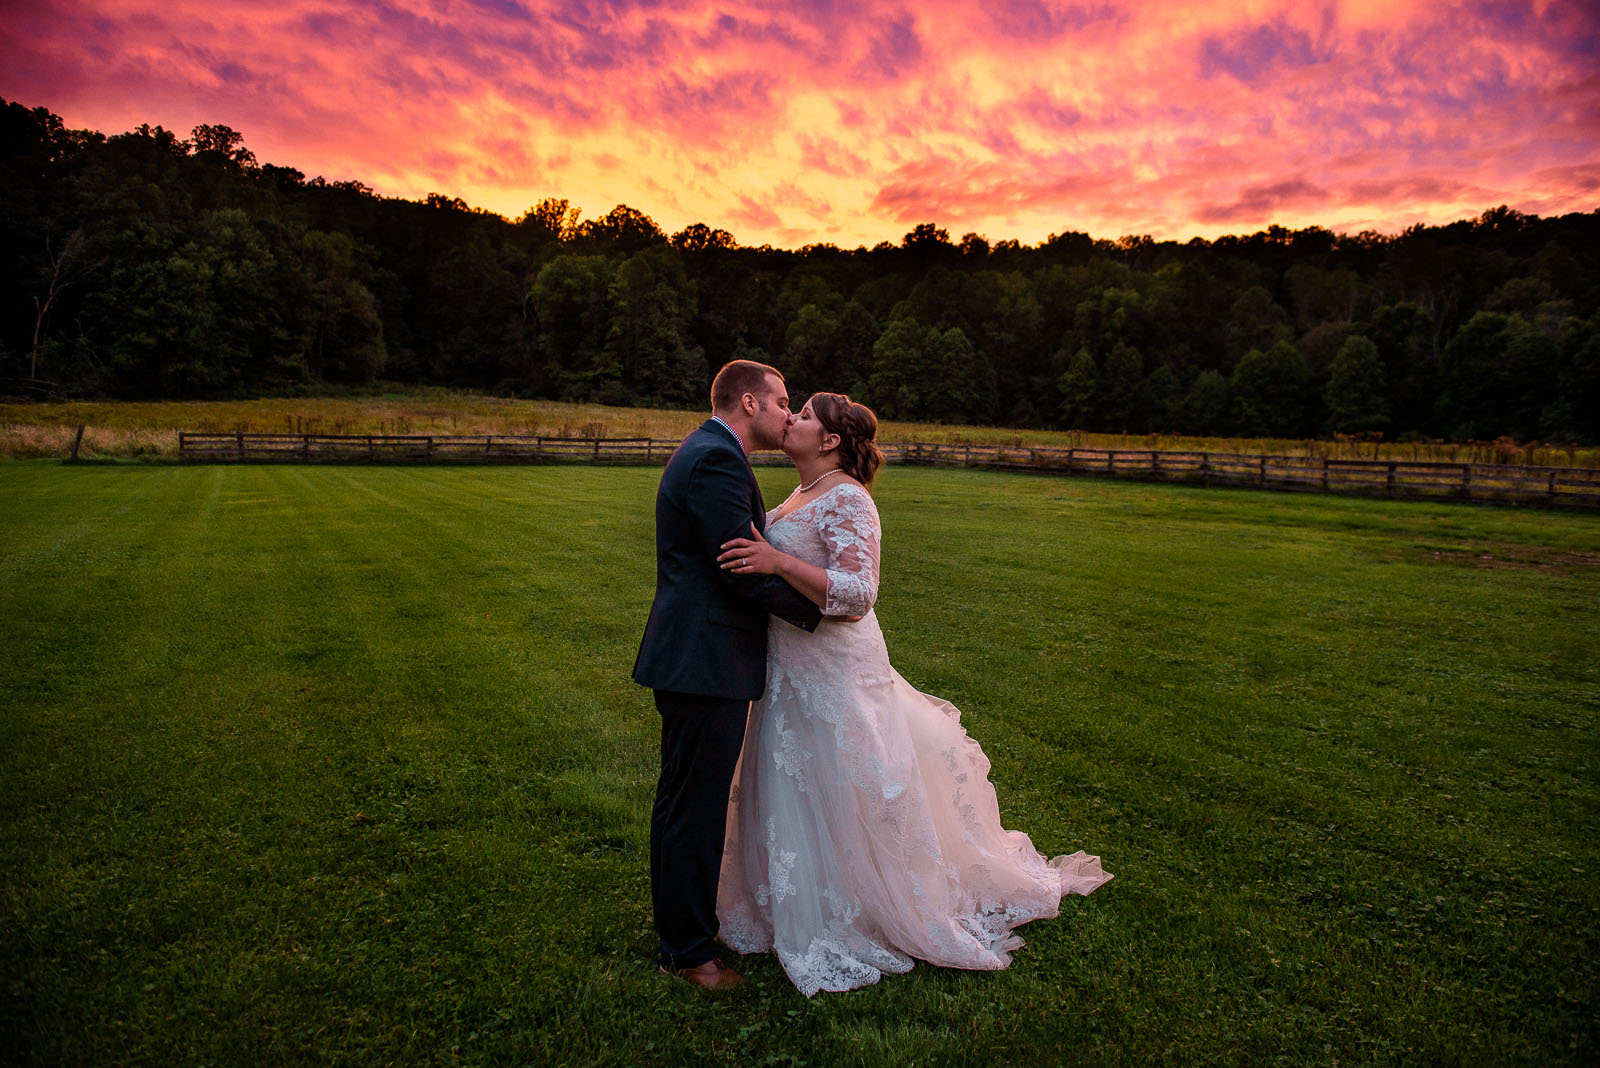 Eric_and_Christy_Photography_Blog_Wedding_Stacey_Geoff-62